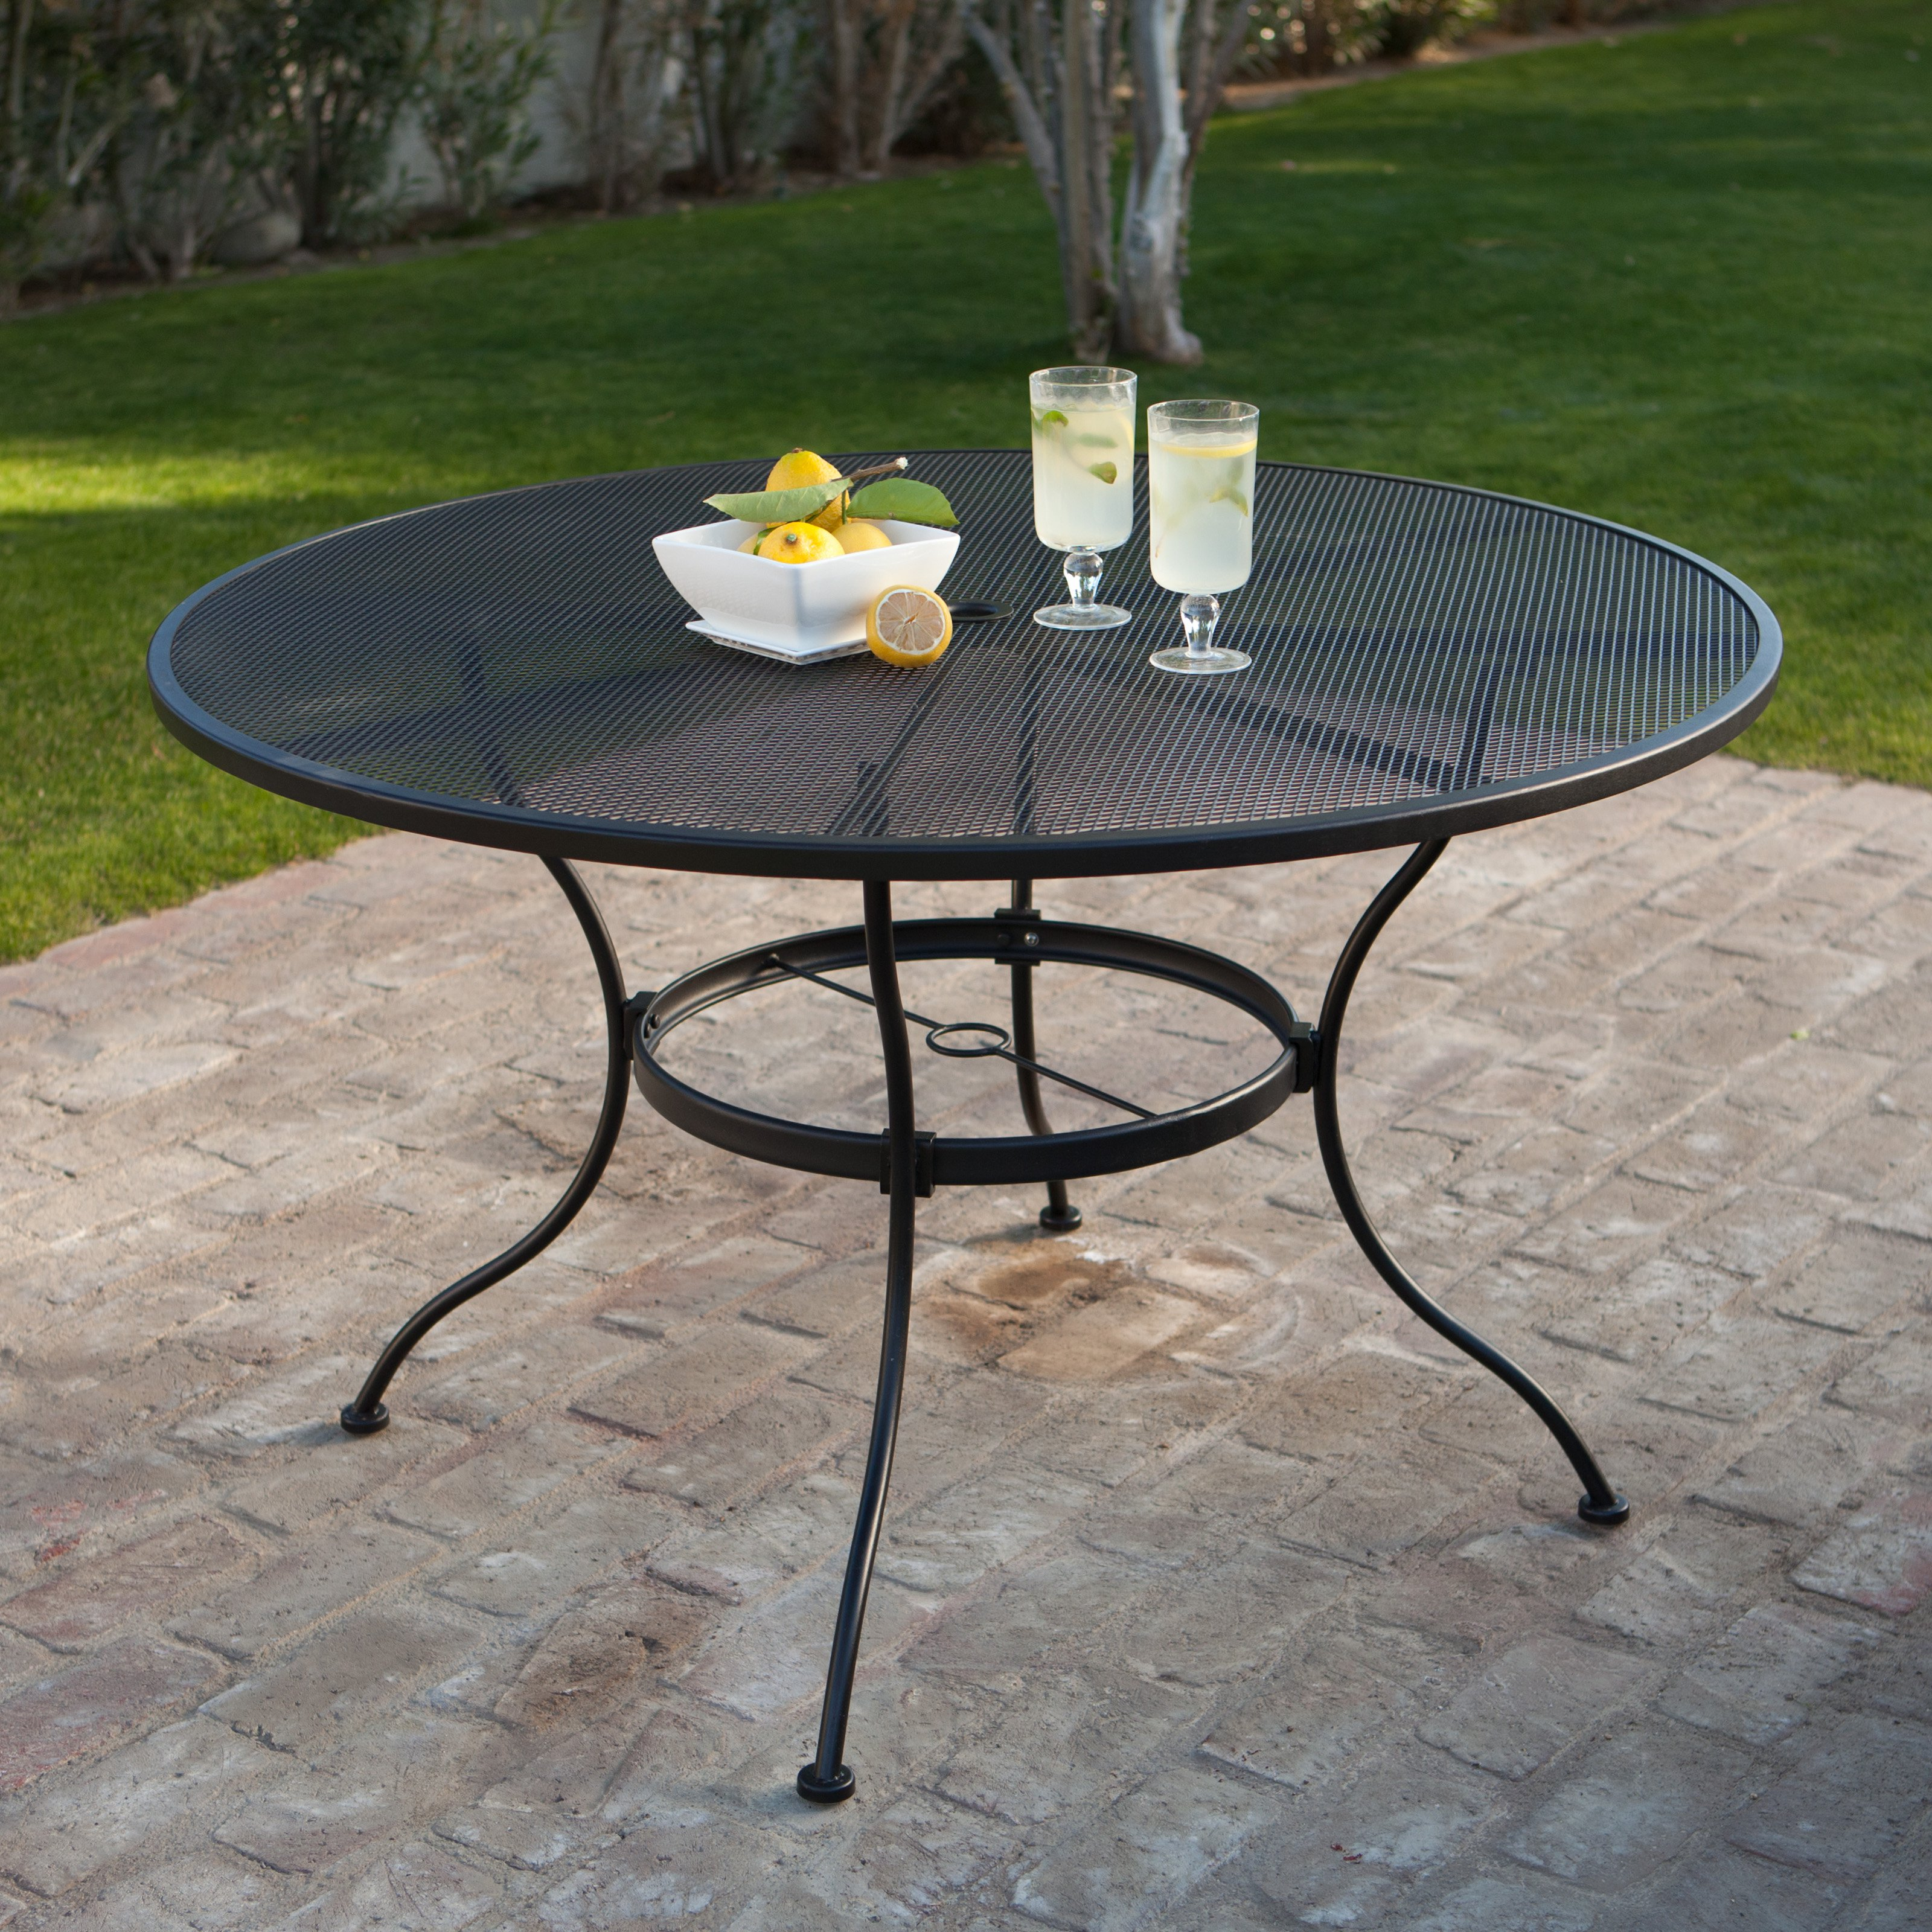 Round Wrought Iron Patio Dining Table By Woodard Textured Black